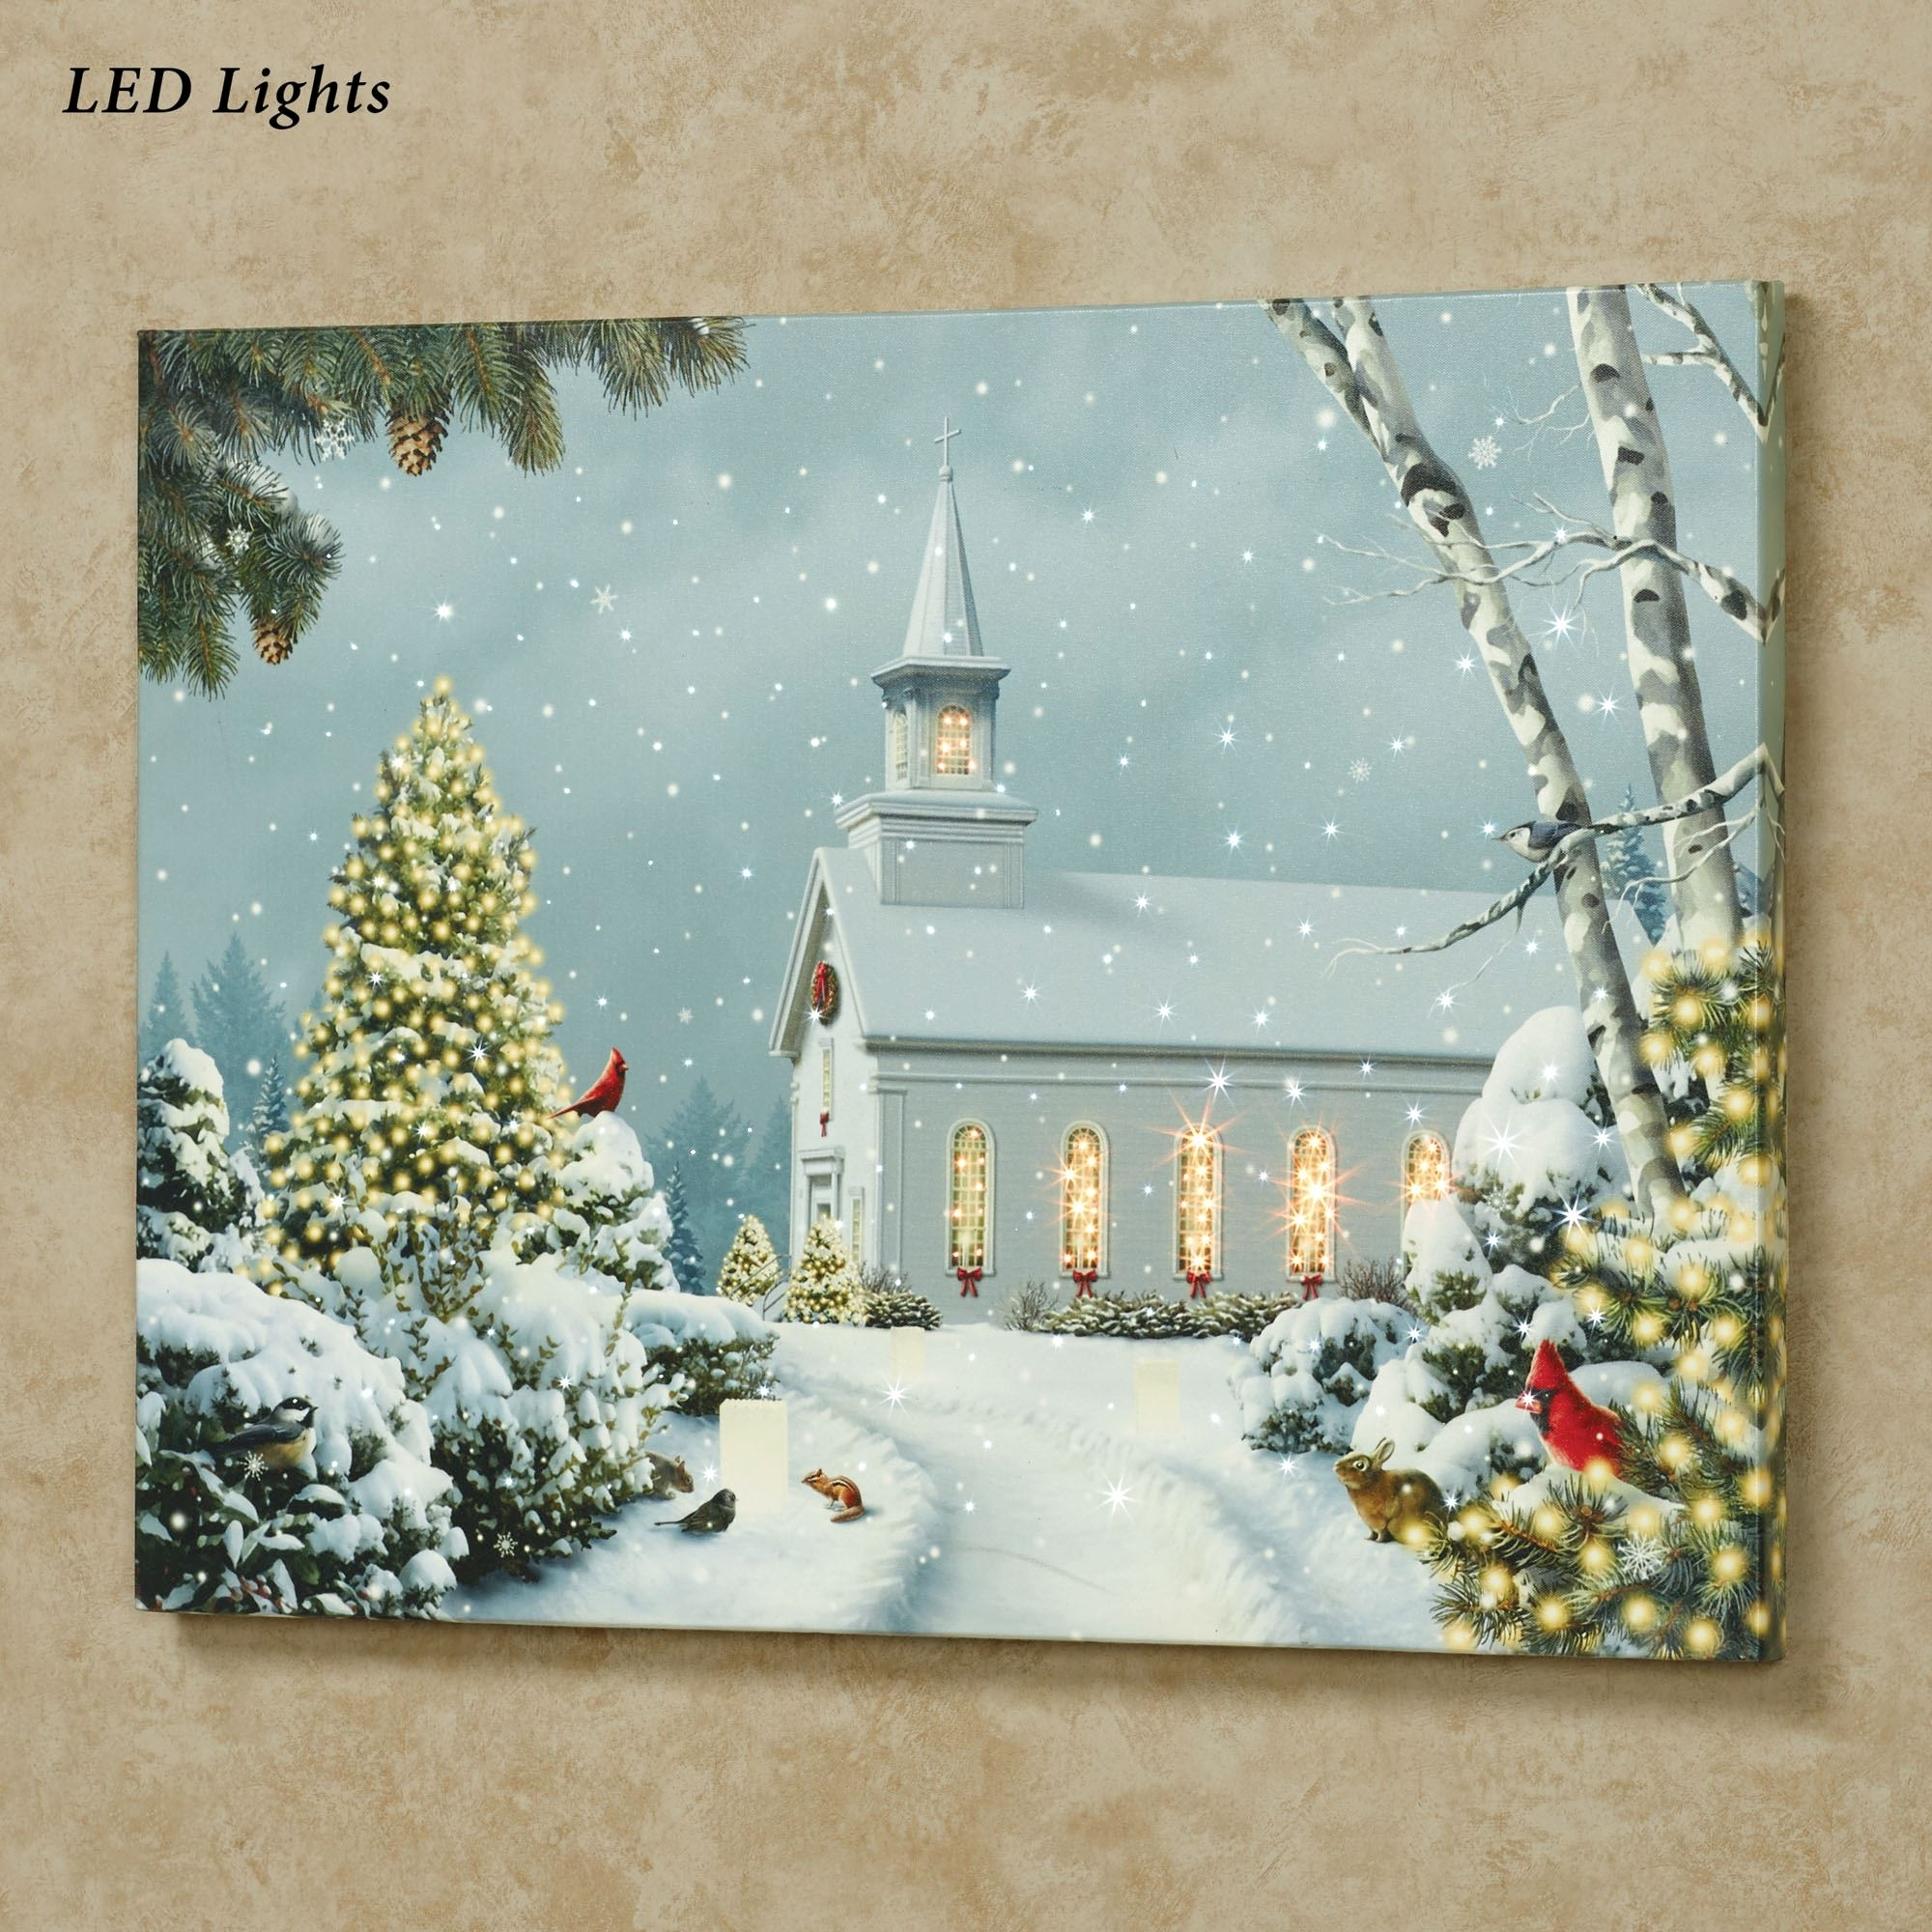 Led Lighted Wall Canvas – Oregonuforeview Throughout Most Recent Lighted Canvas Wall Art (View 5 of 15)